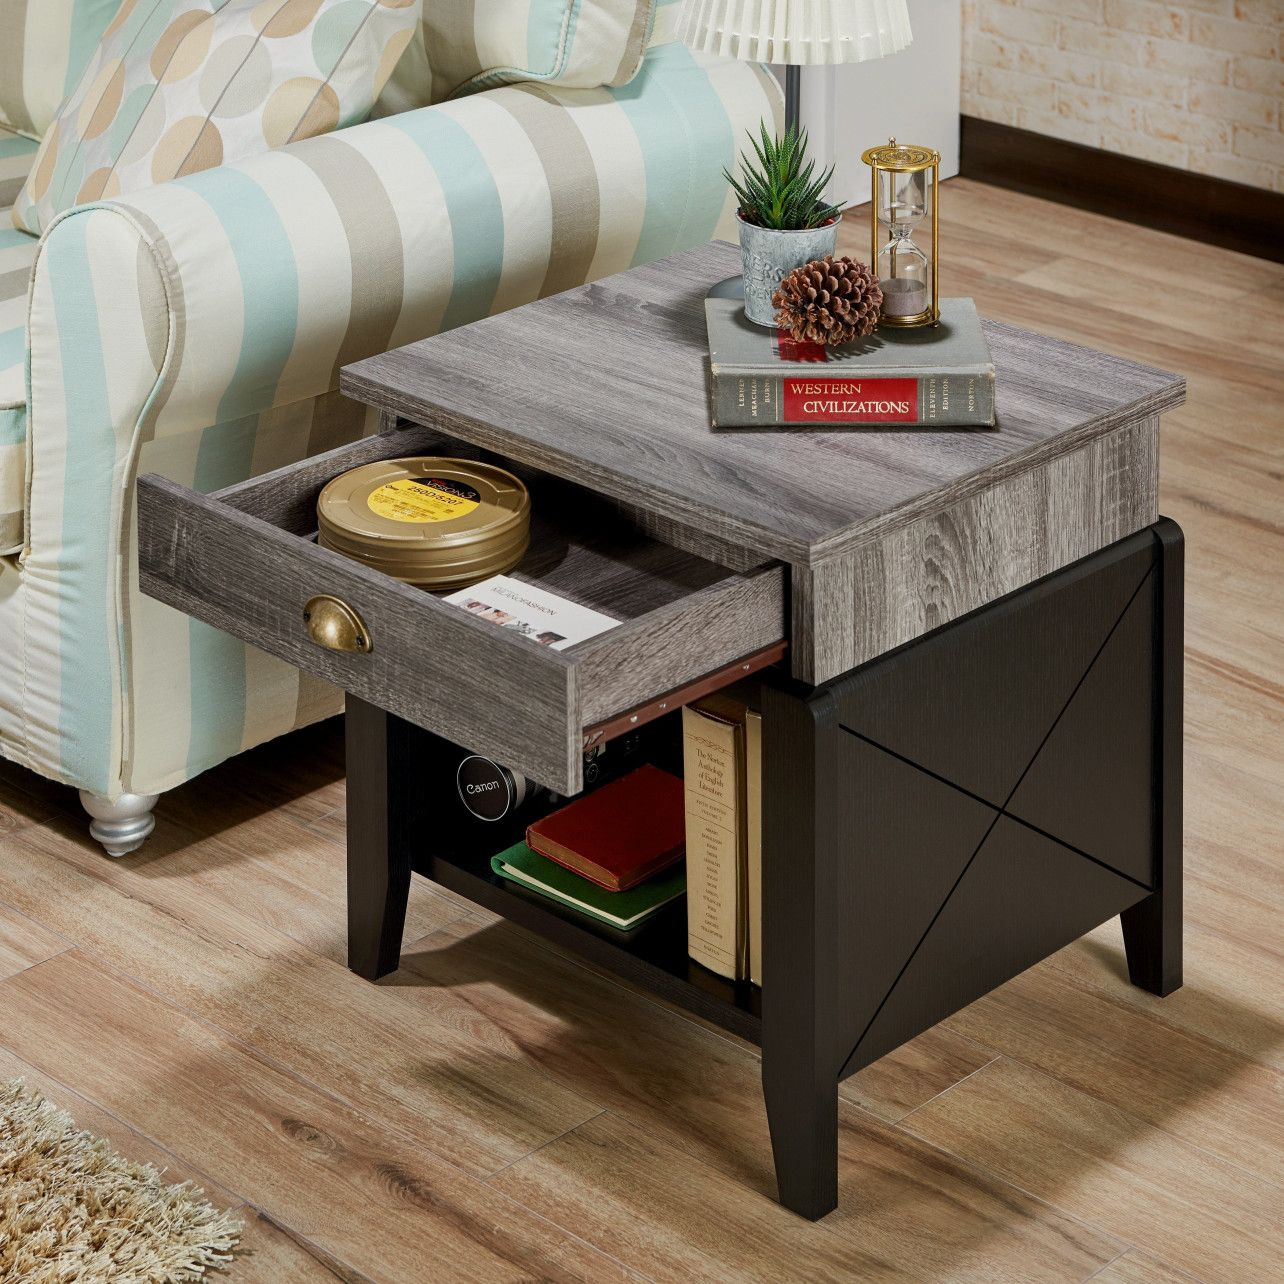 70 Lovely American Signature Coffee Table 2020 Coffee Table Coffee Table Wood Modern End Tables [ 1284 x 1284 Pixel ]